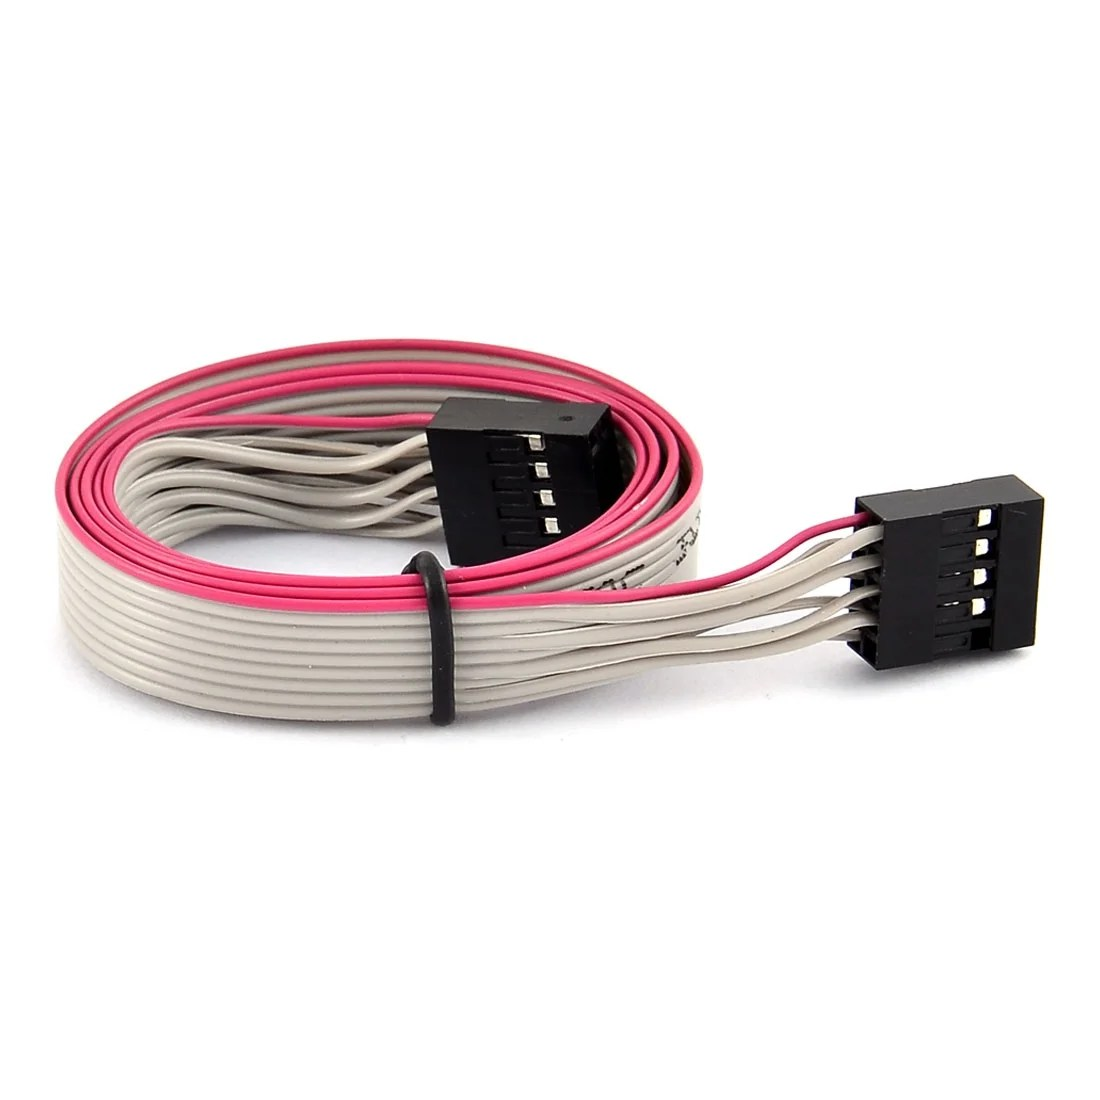 hight resolution of shop 62cm 9 pin female to female wires extension flat connector ribbon cable gray free shipping on orders over 45 overstock 18425580